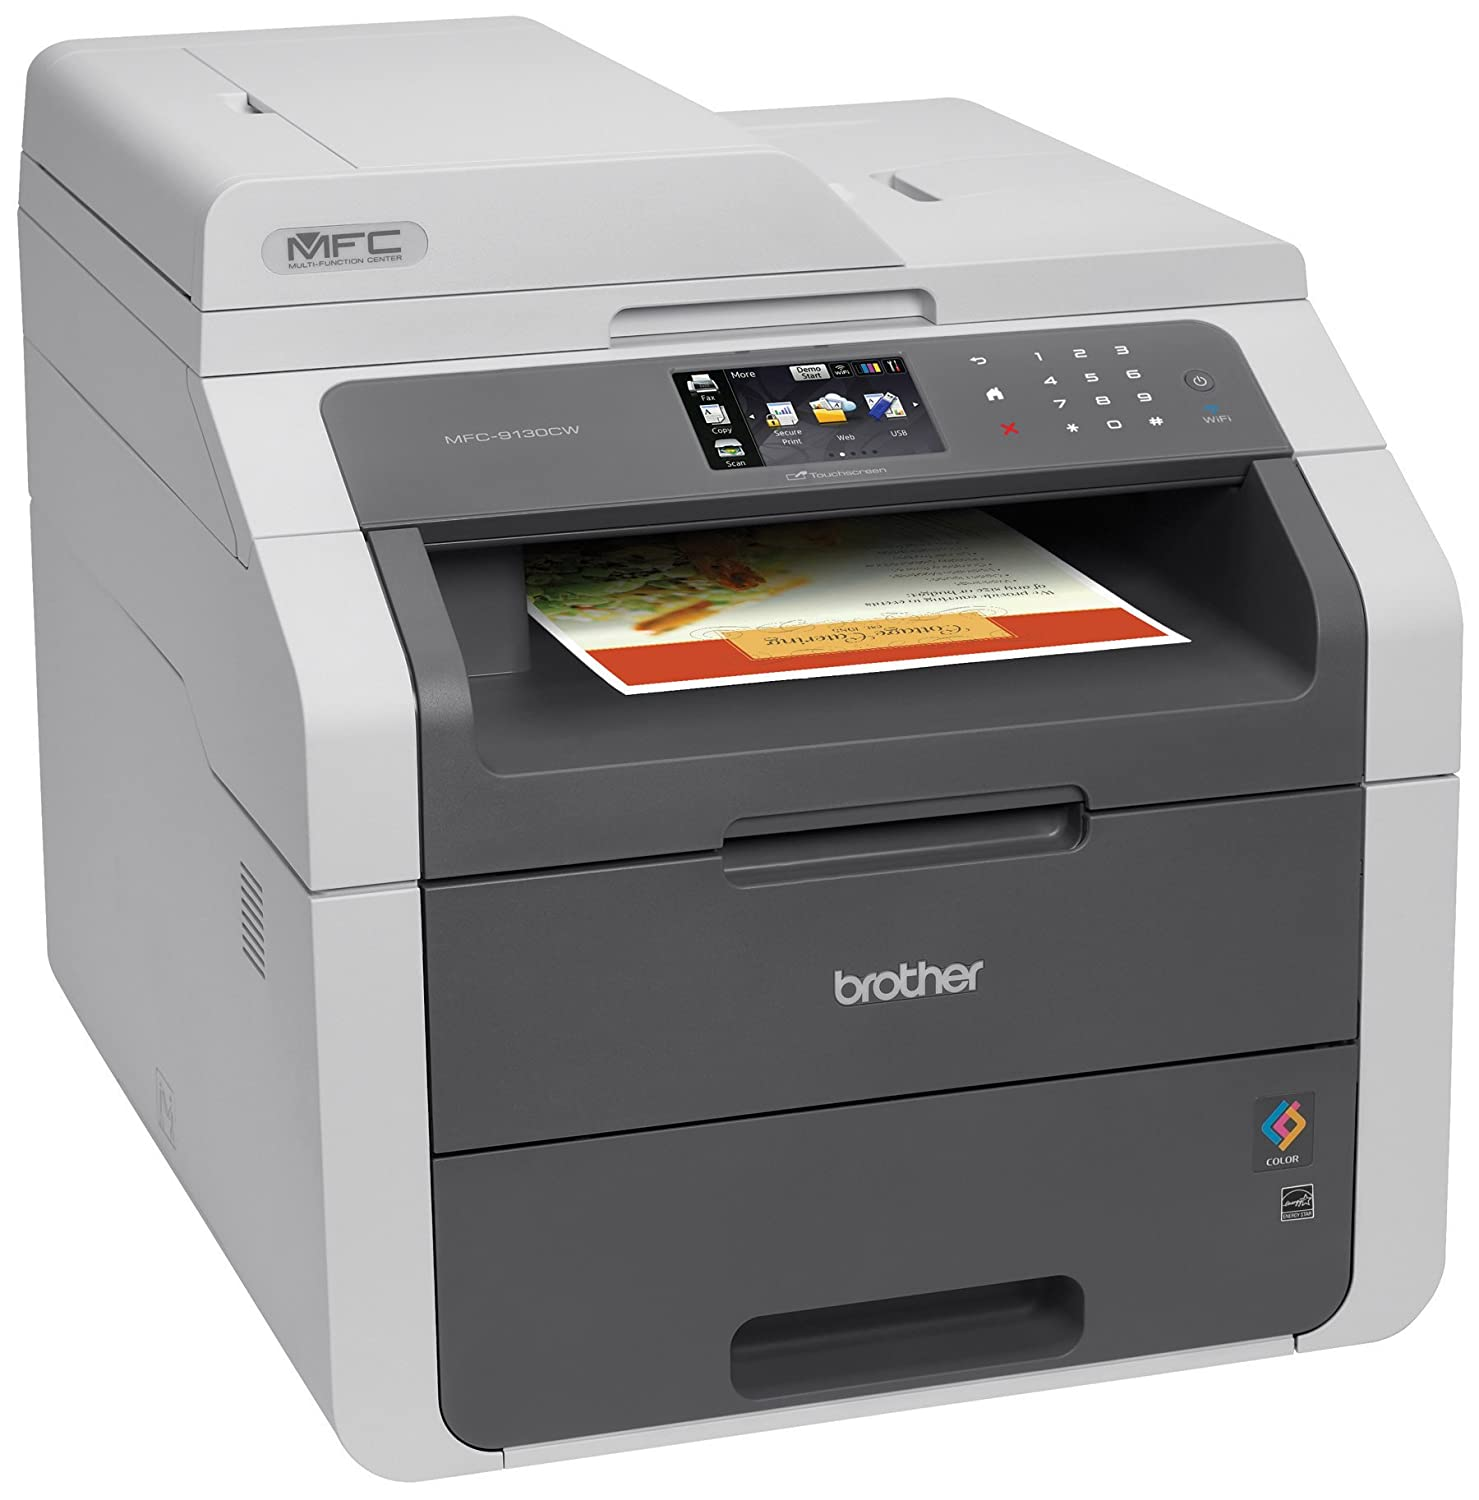 Color printers laser - Amazon Com Brother Mfc9130cw Wireless All In One Printer With Scanner Copier And Fax Amazon Dash Replenishment Enabled Electronics